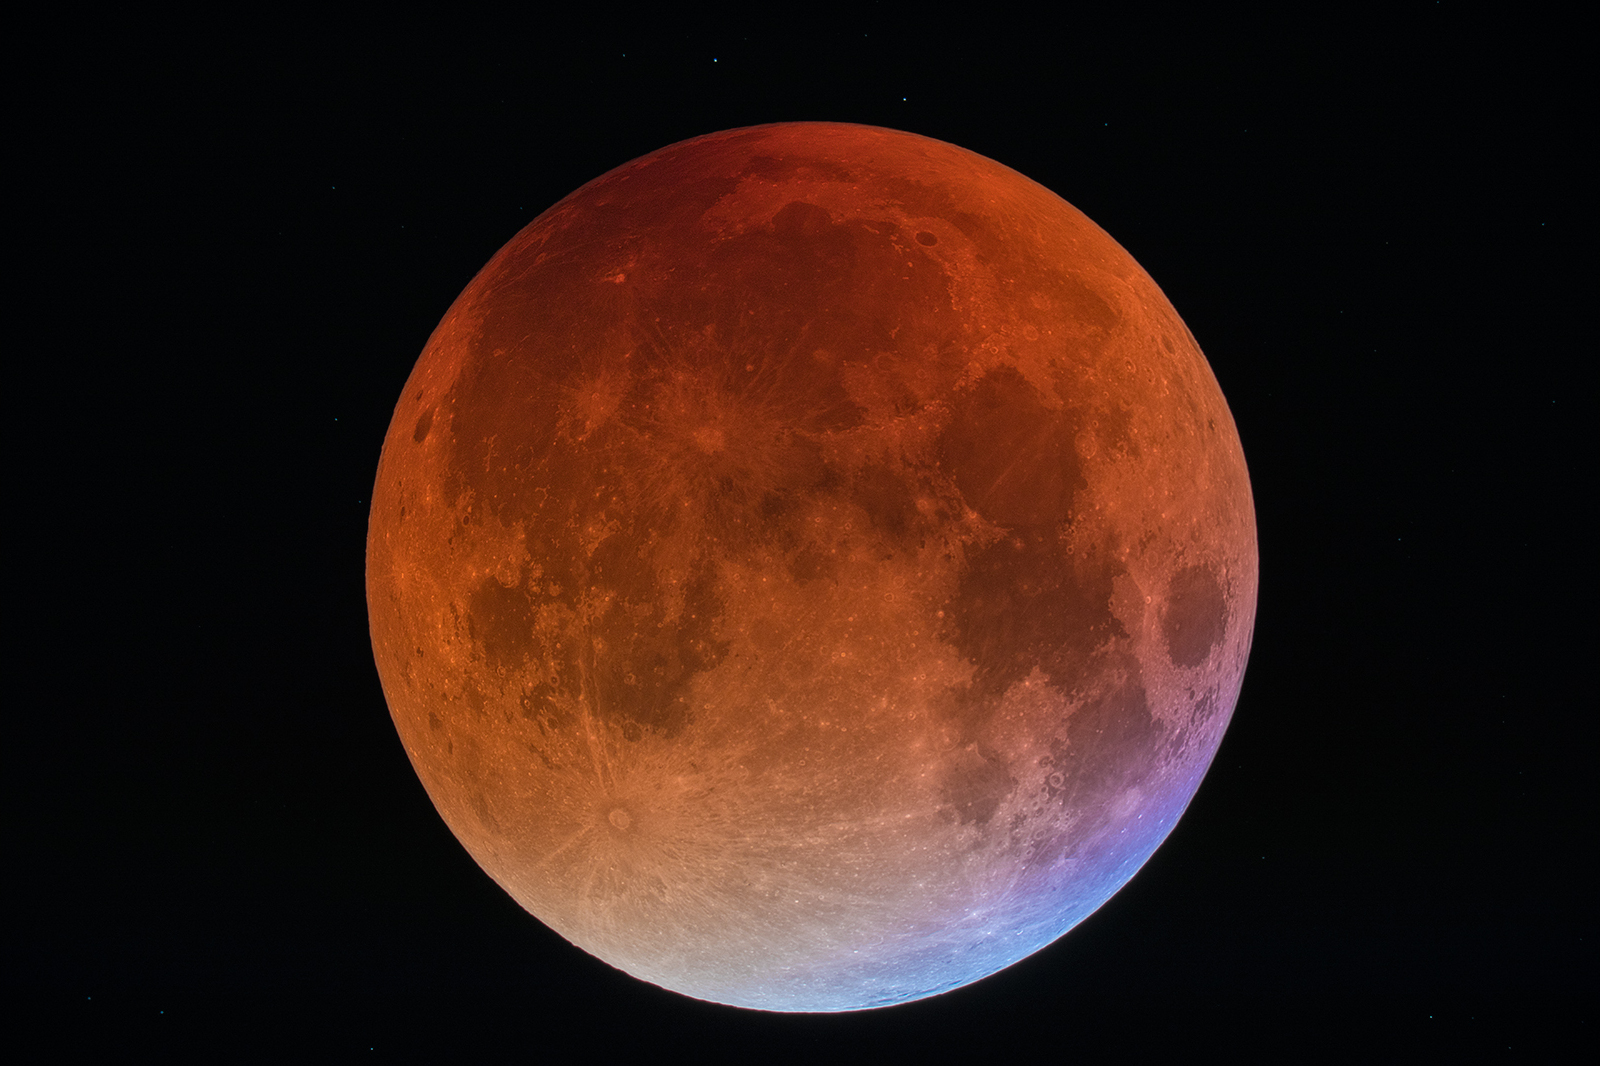 The Super Blue Blood Moon will rise on January 31